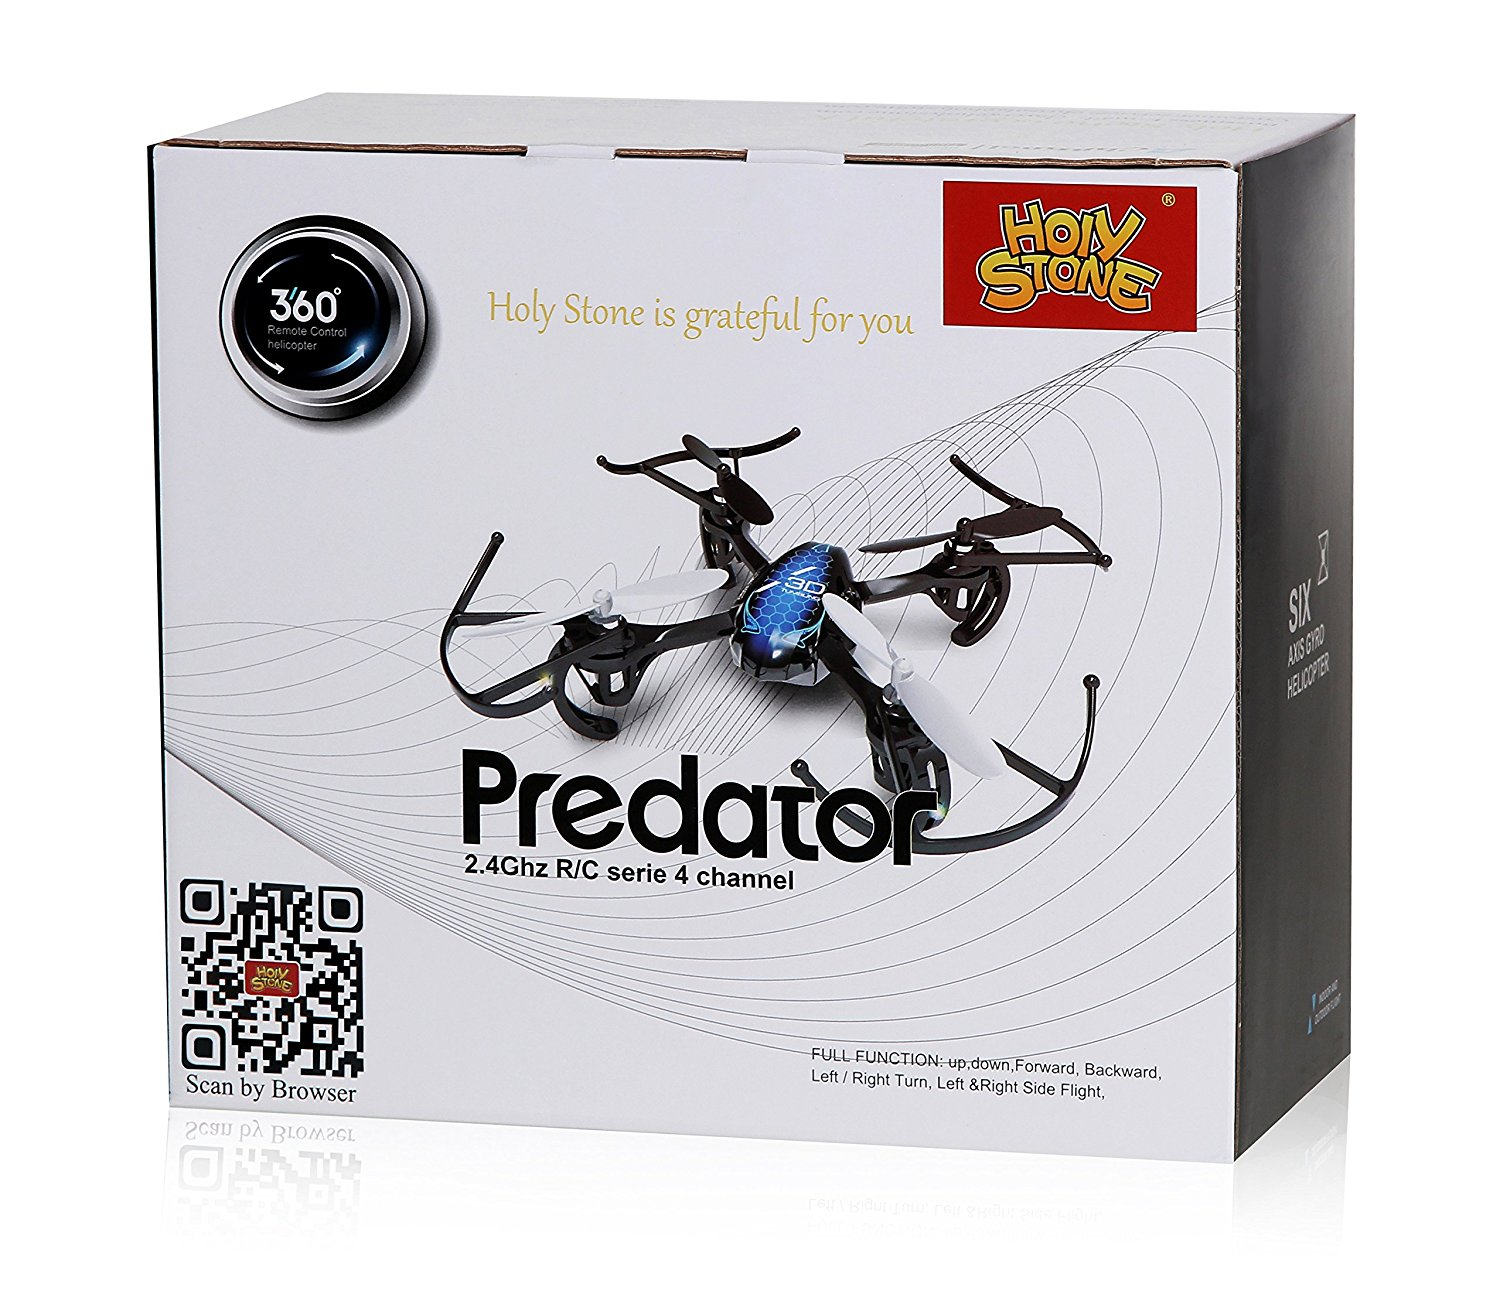 us Holy Stone HS170 Predator Mini RC Helicopter Drone 2 4Ghz 6-Axis Gyro 4  Channels Quadcopter Good Choice for Drone Training - RcMoment com